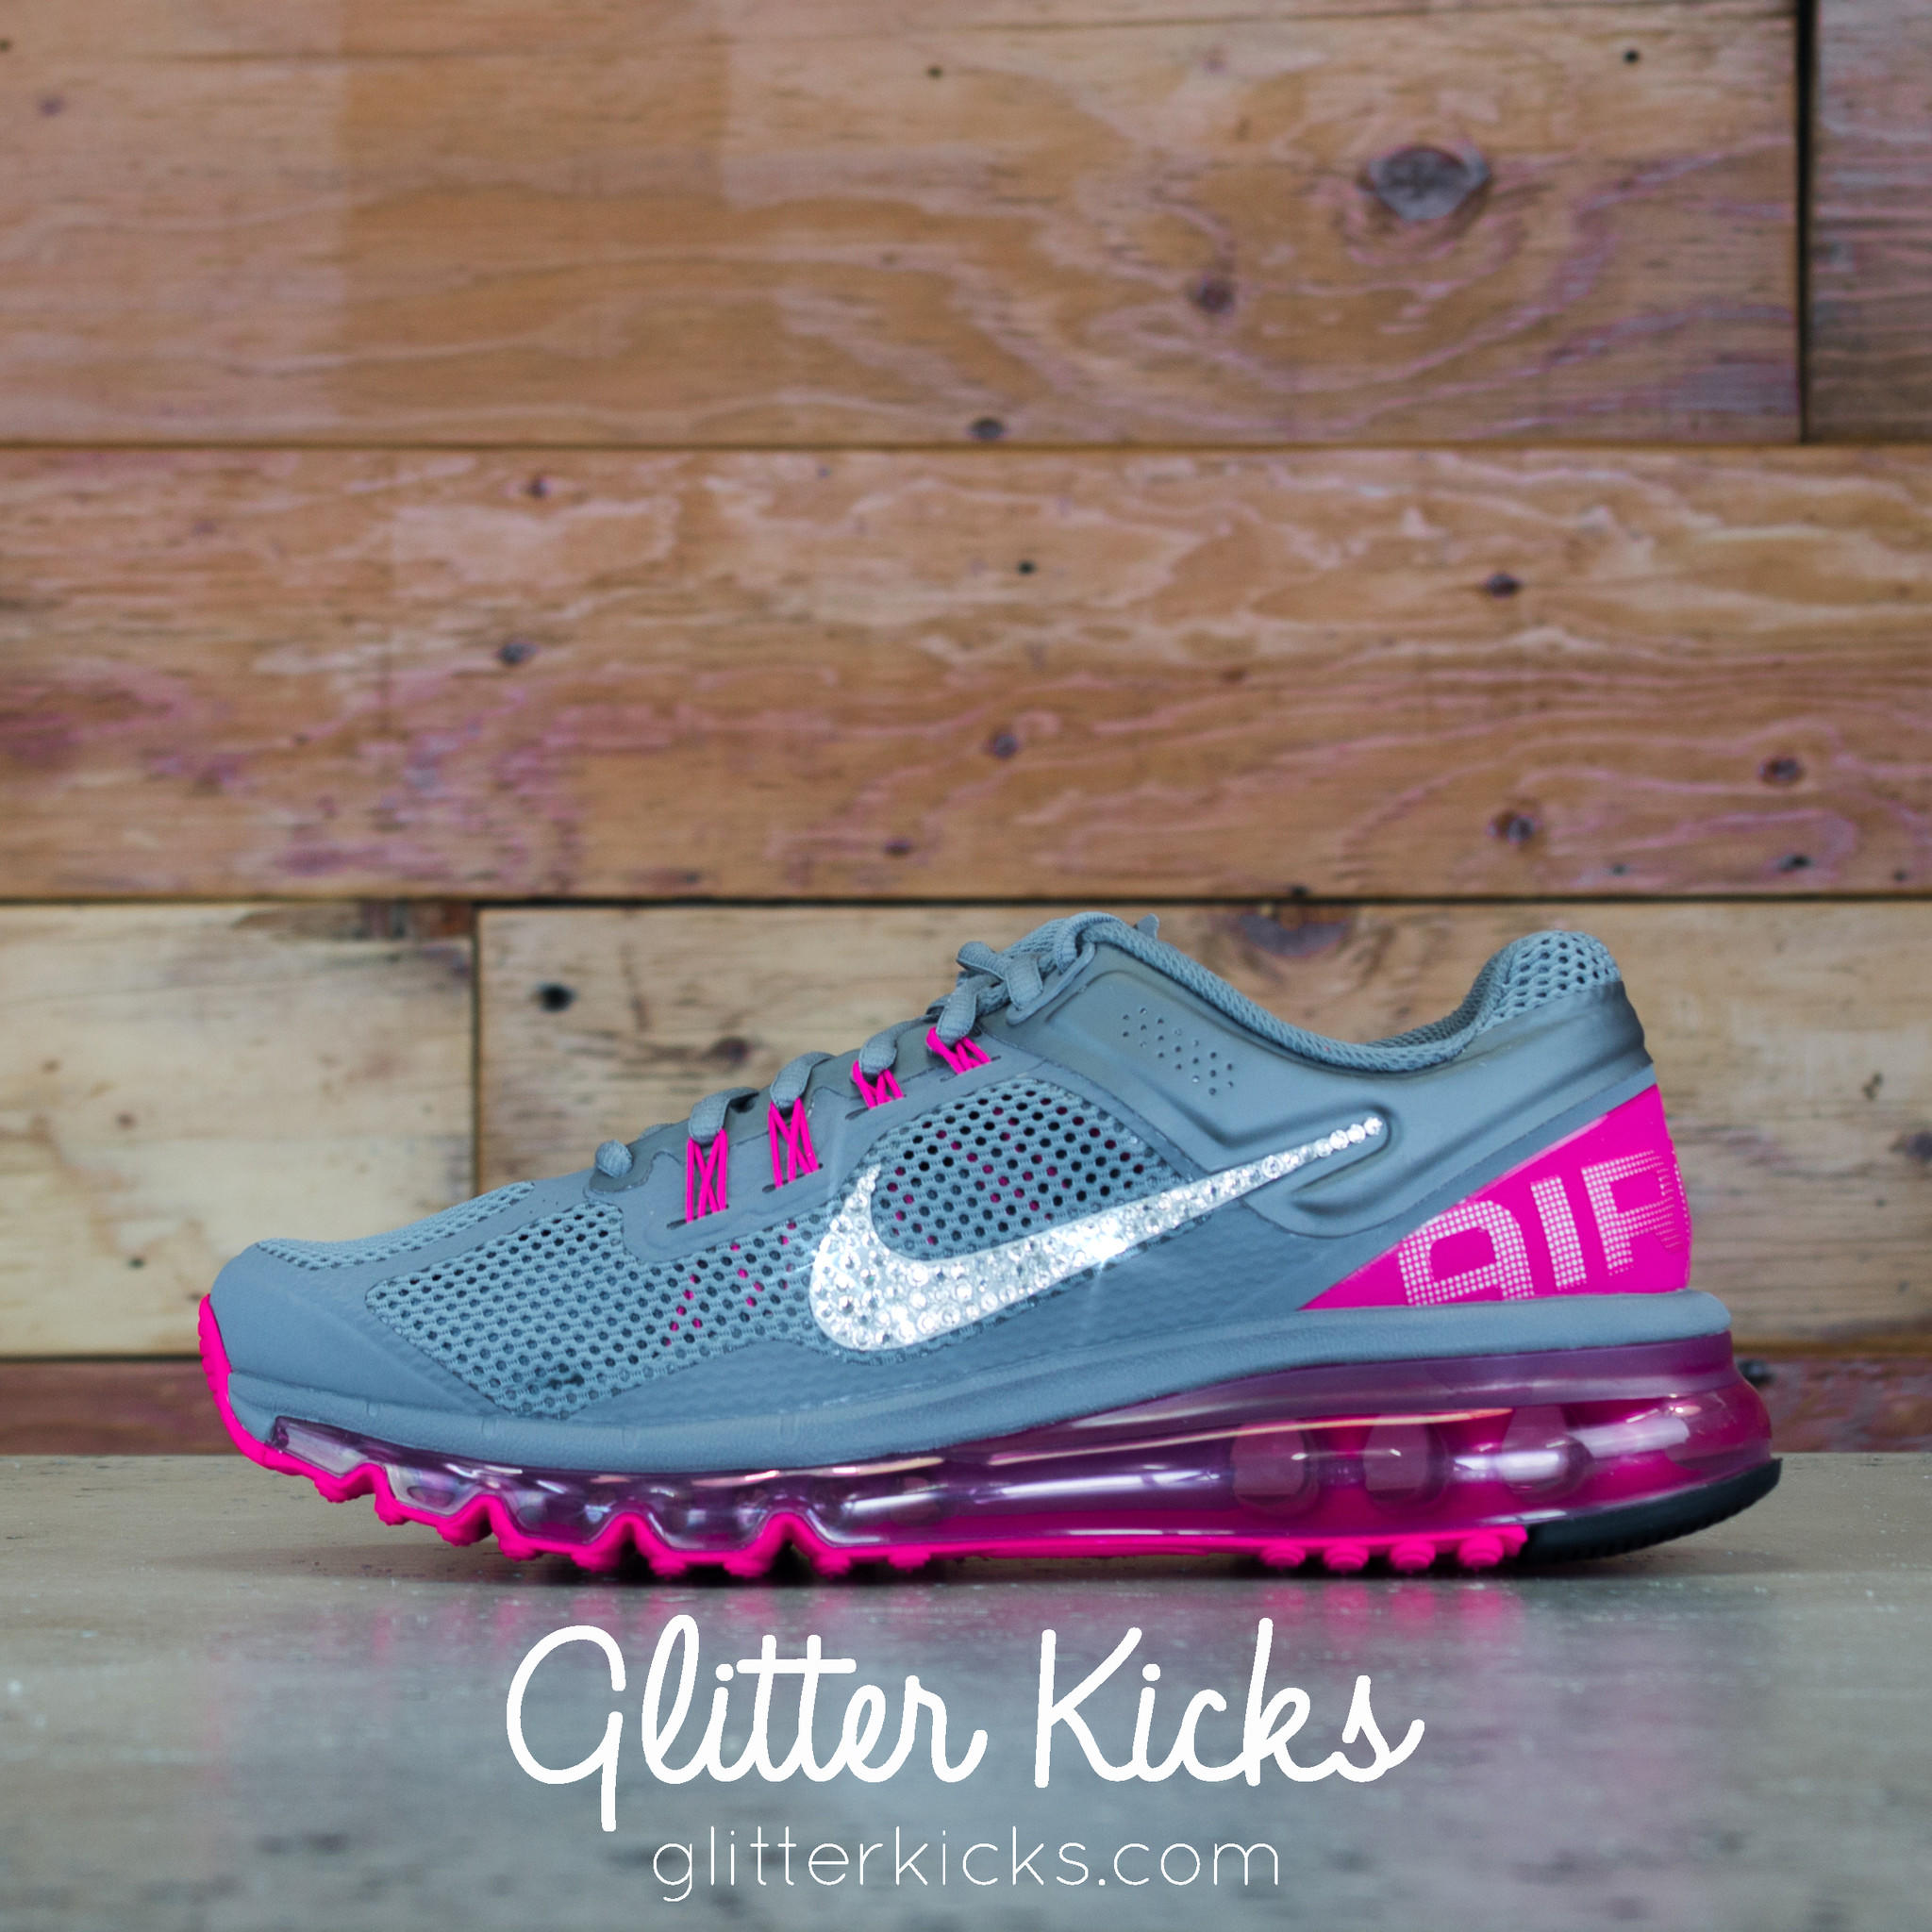 Air Nike Shoes From Running Kicks 360 By Max Glitter Women s C5wxdnC 8cf1a7c058